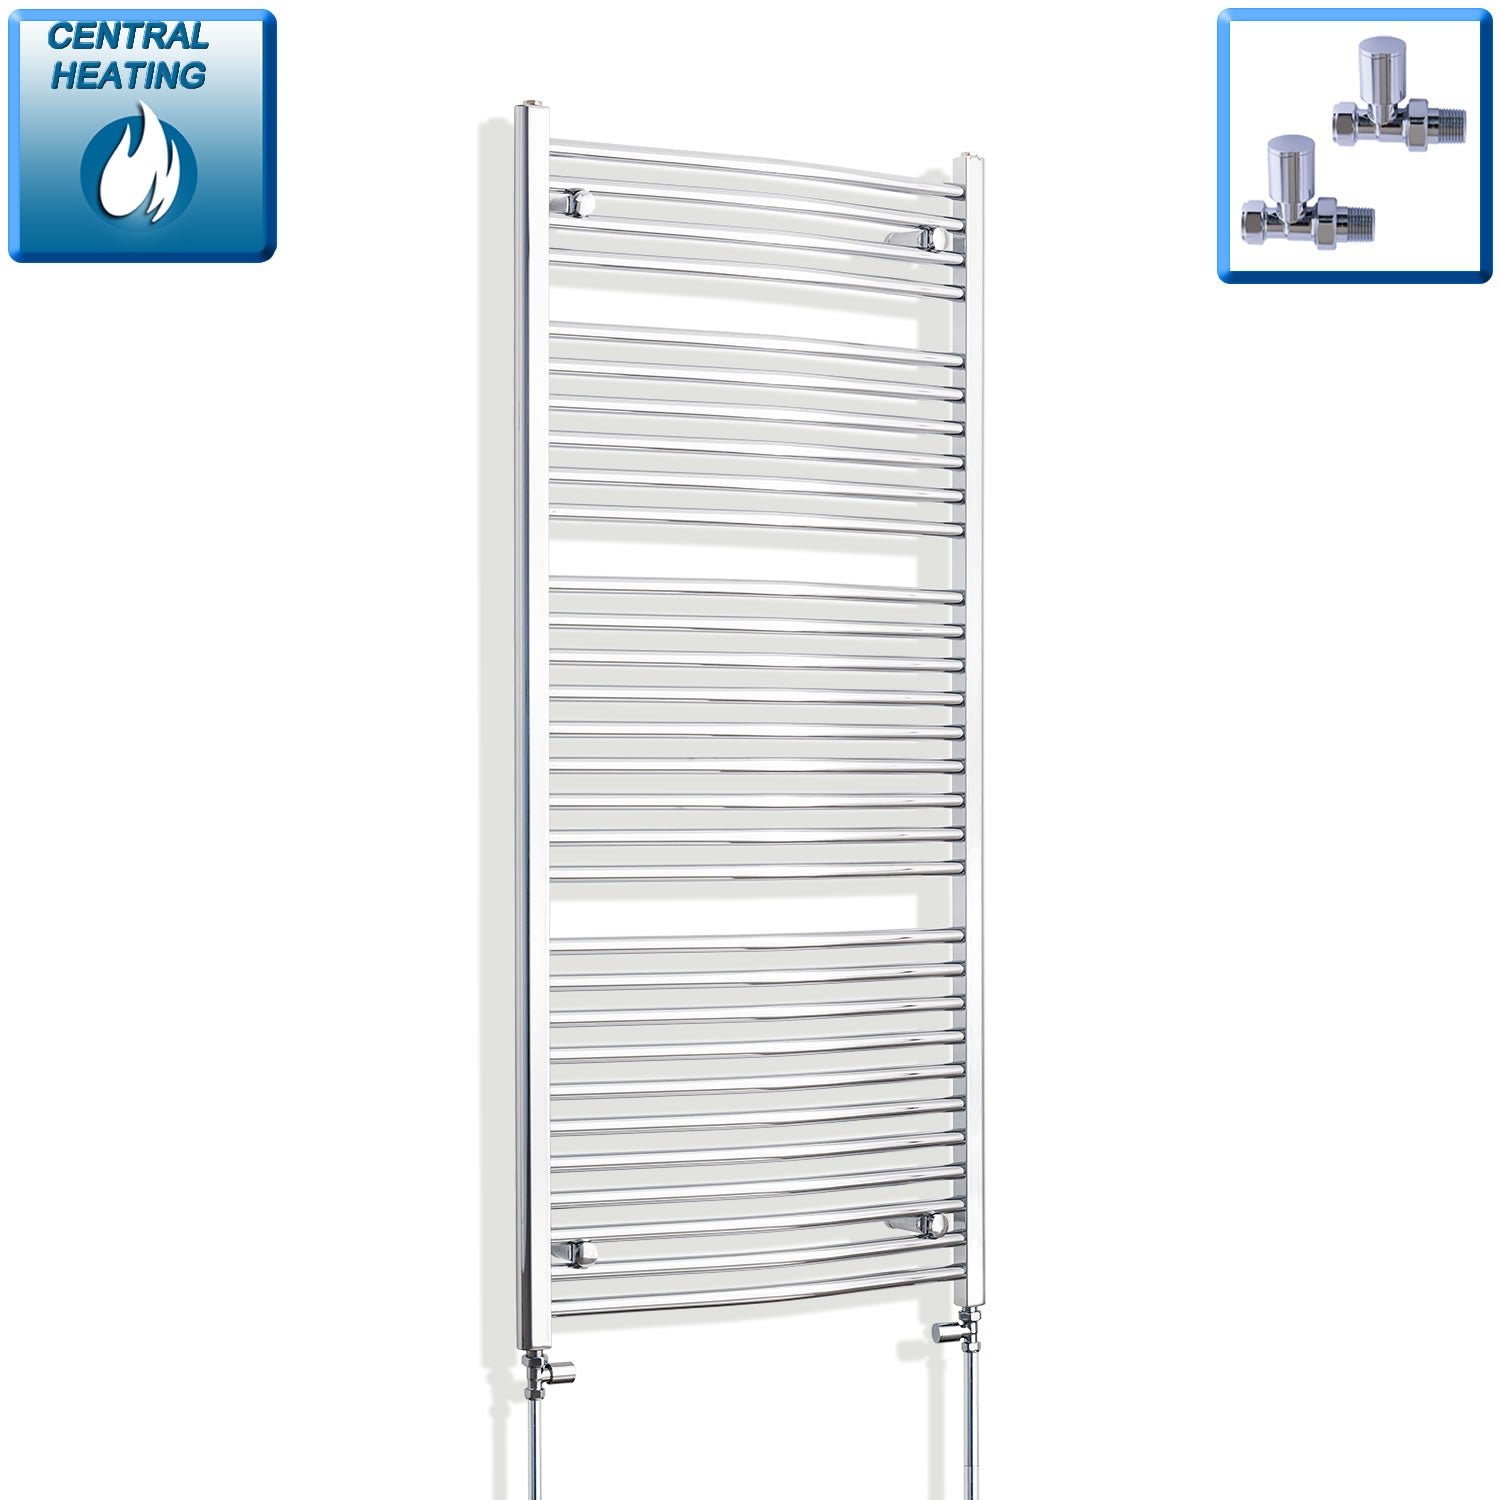 750mm x 1500mm High Curved Chrome Towel Rail Radiator With Straight Valve